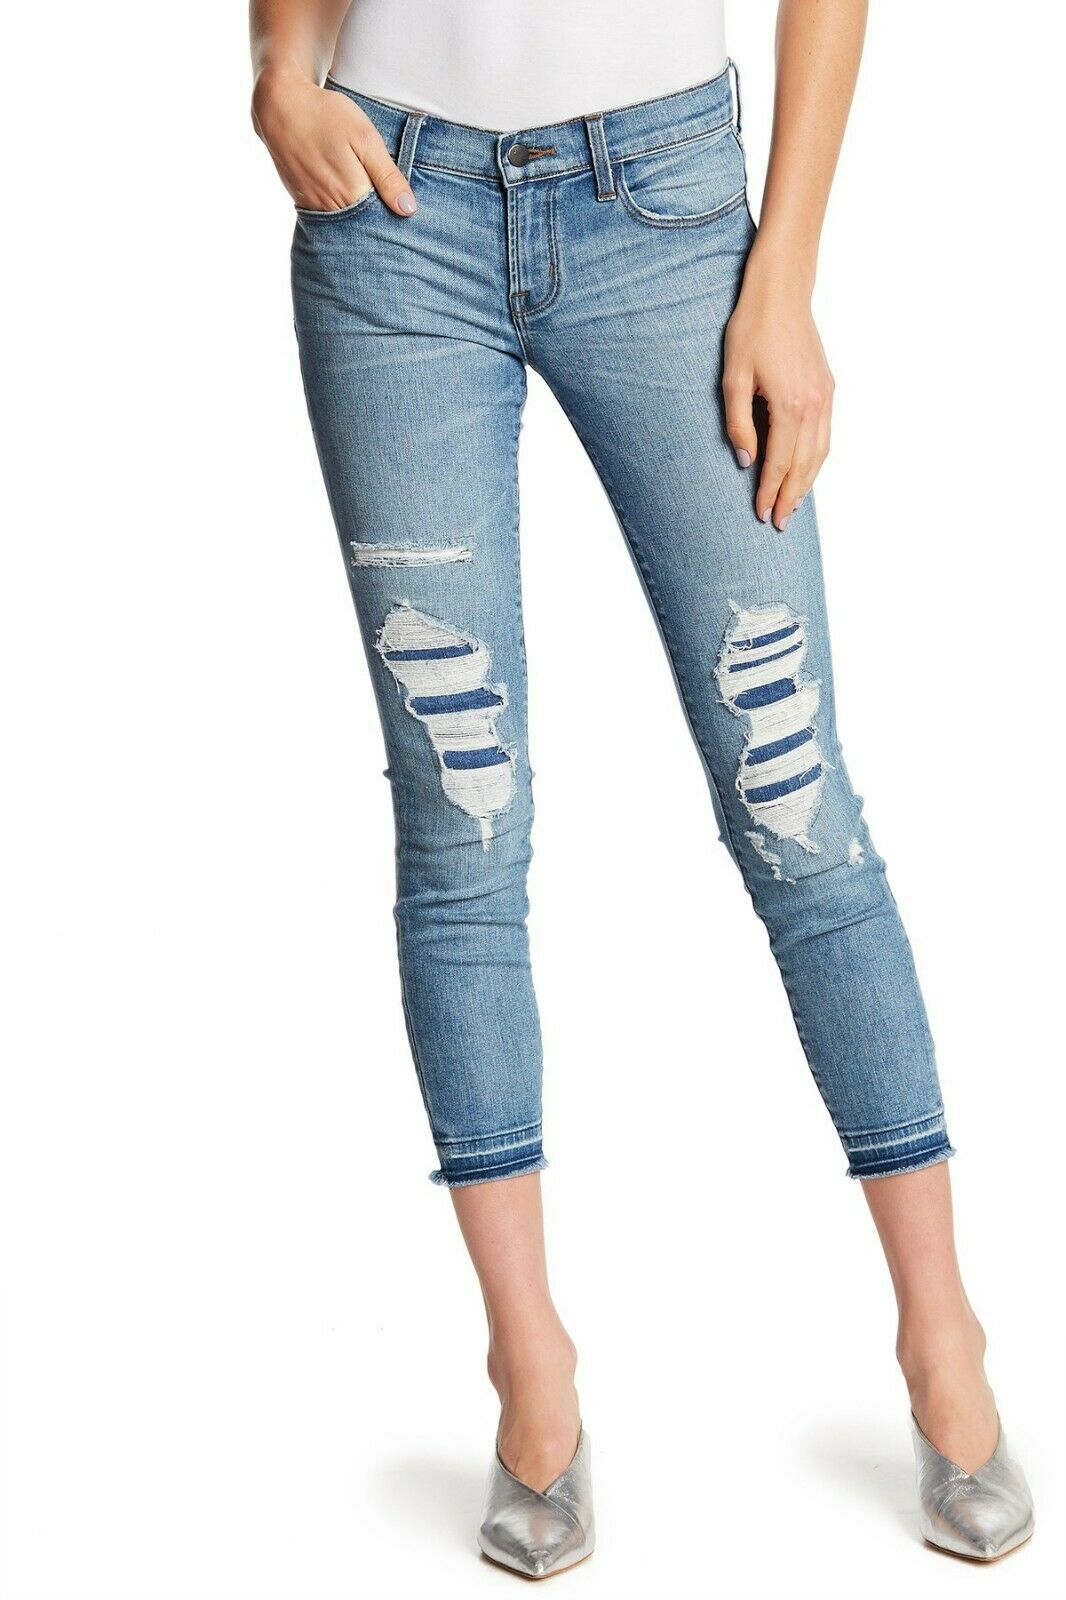 268 NEW J Brand 9326 Low Rise Crop Skinny Jeans in Diversion Destruct - Size 27